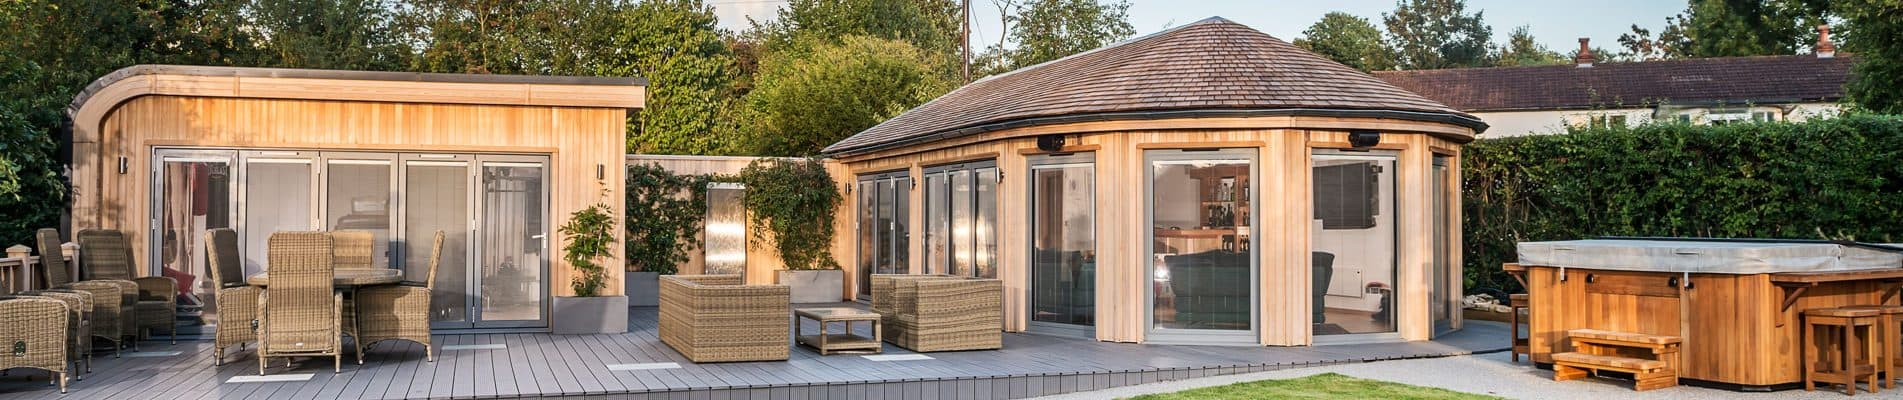 Bespoke Garden Room by Crown Pavilions